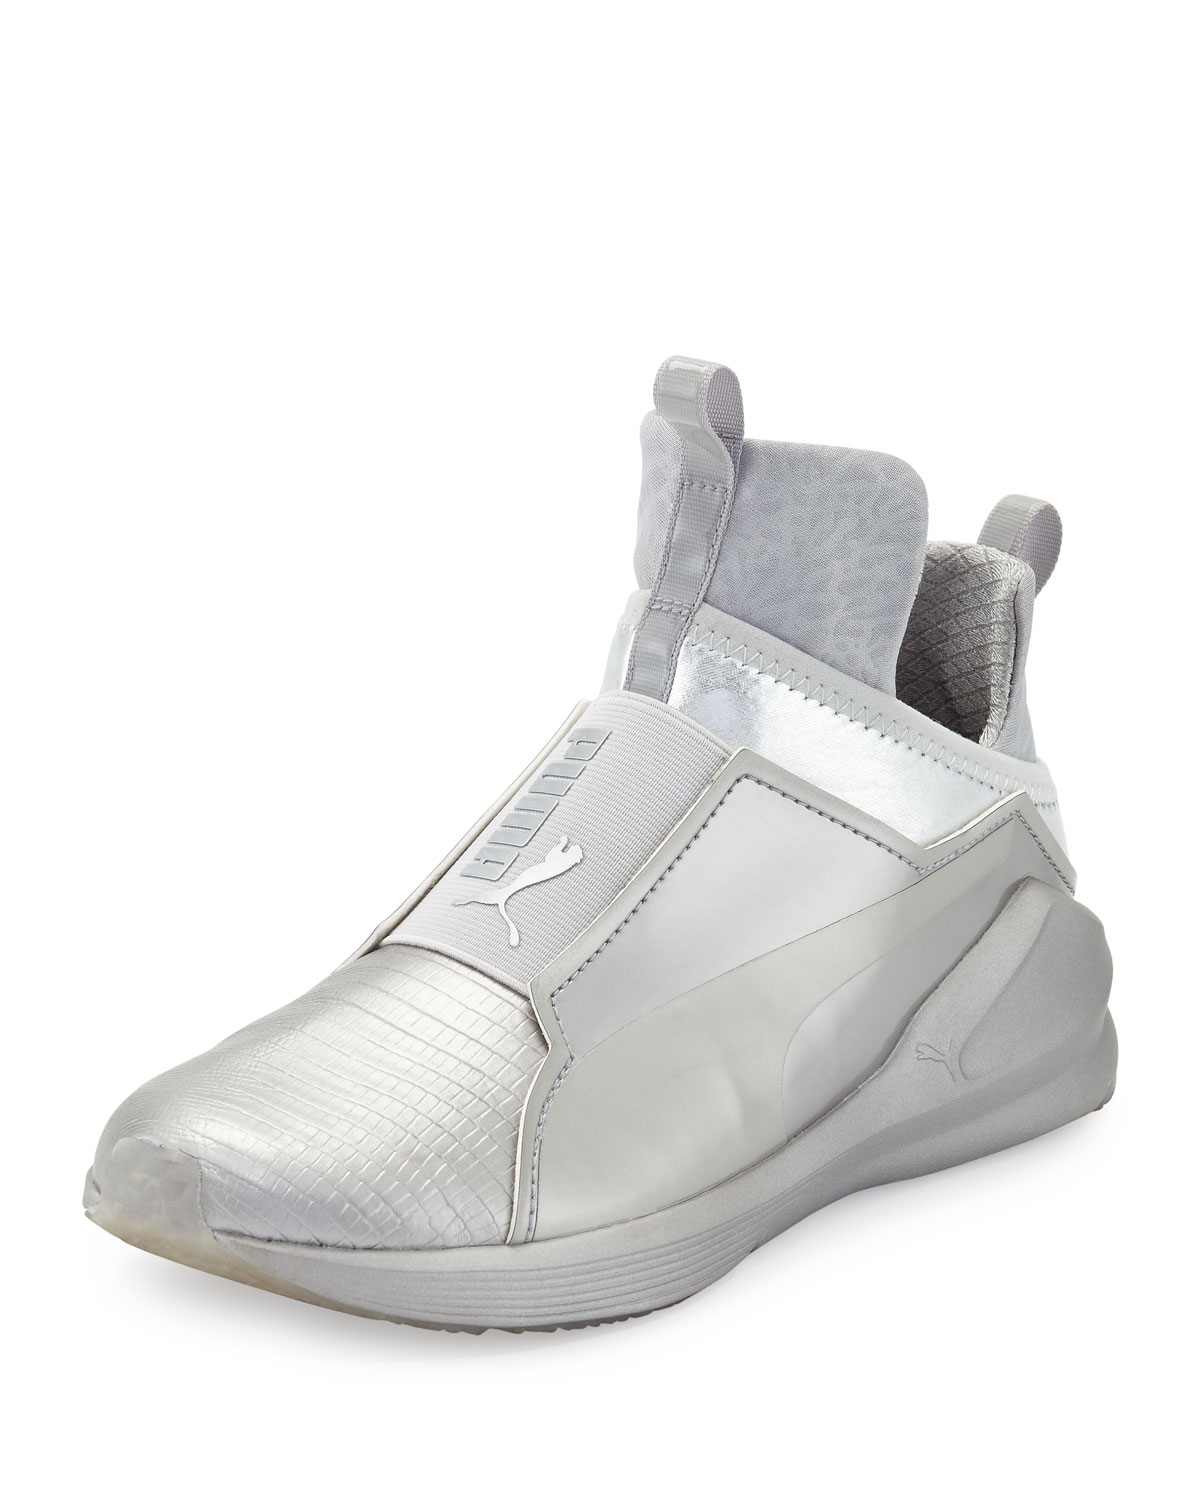 85722201a86 Puma Fierce Lizard-Embossed High-Top Sneakers